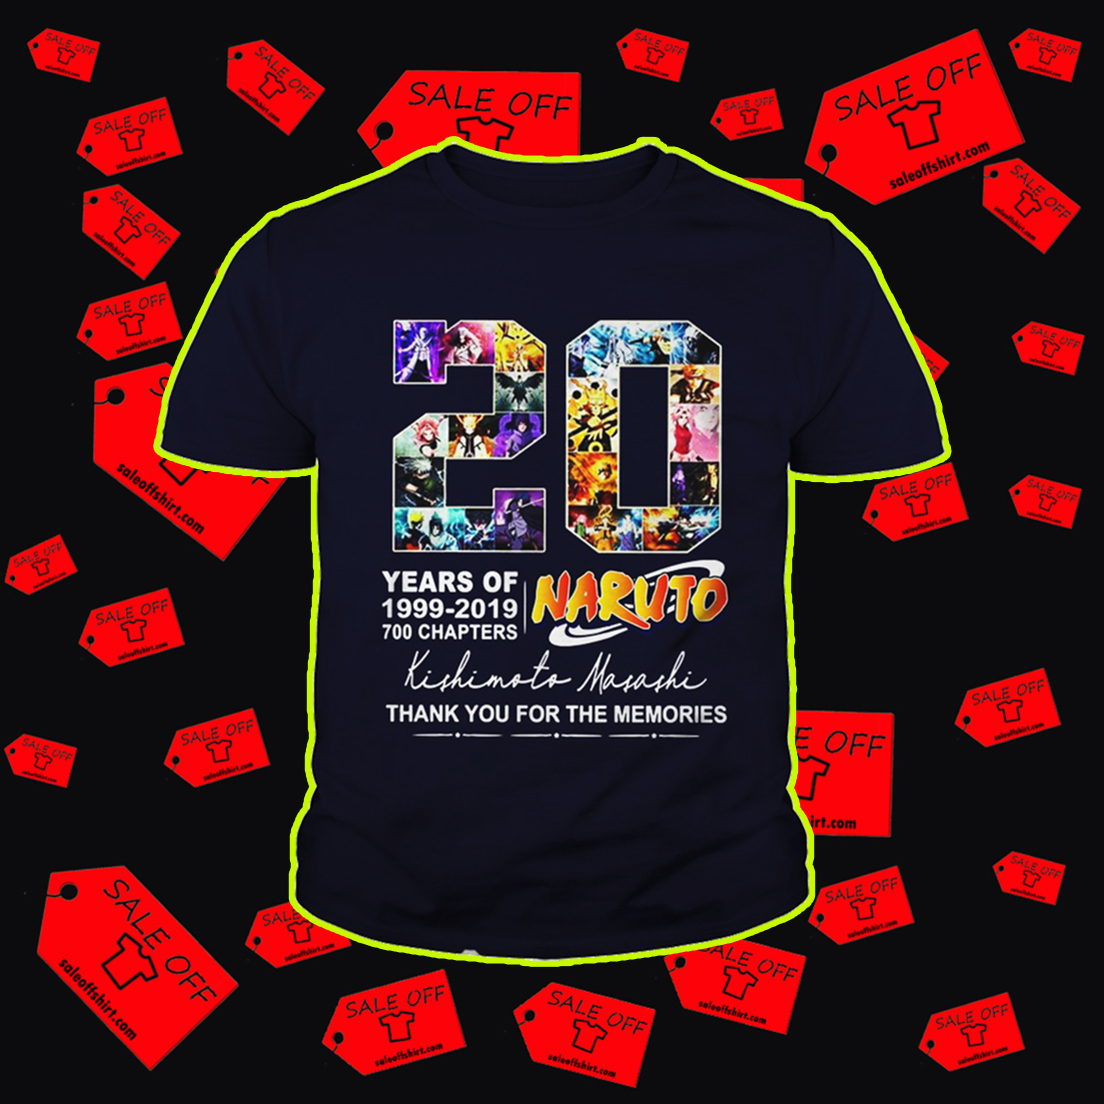 20 years of Naruto thank you for the memories youth tee